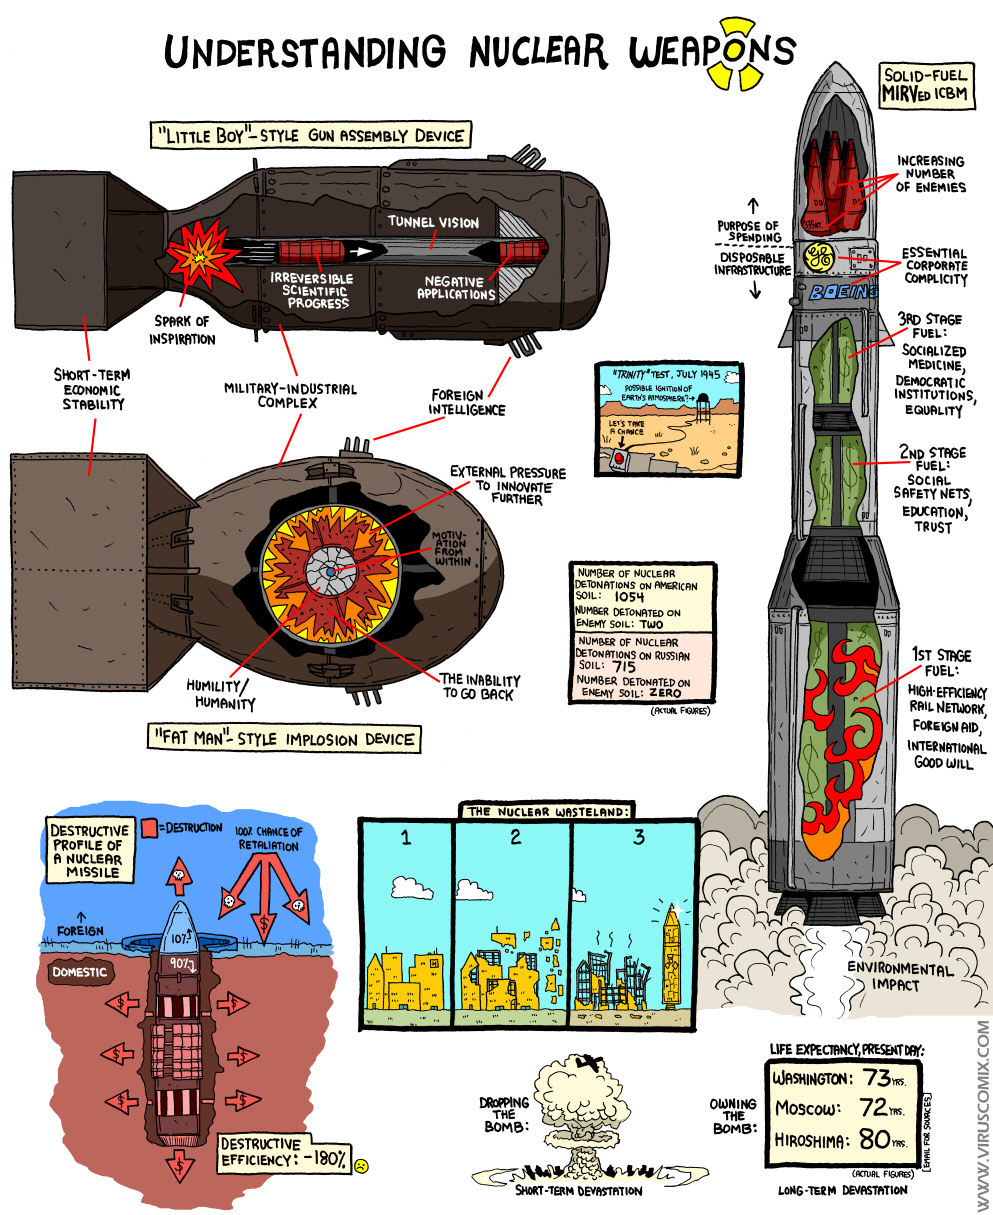 1000+ images about Nuclear Weapons on Pinterest.